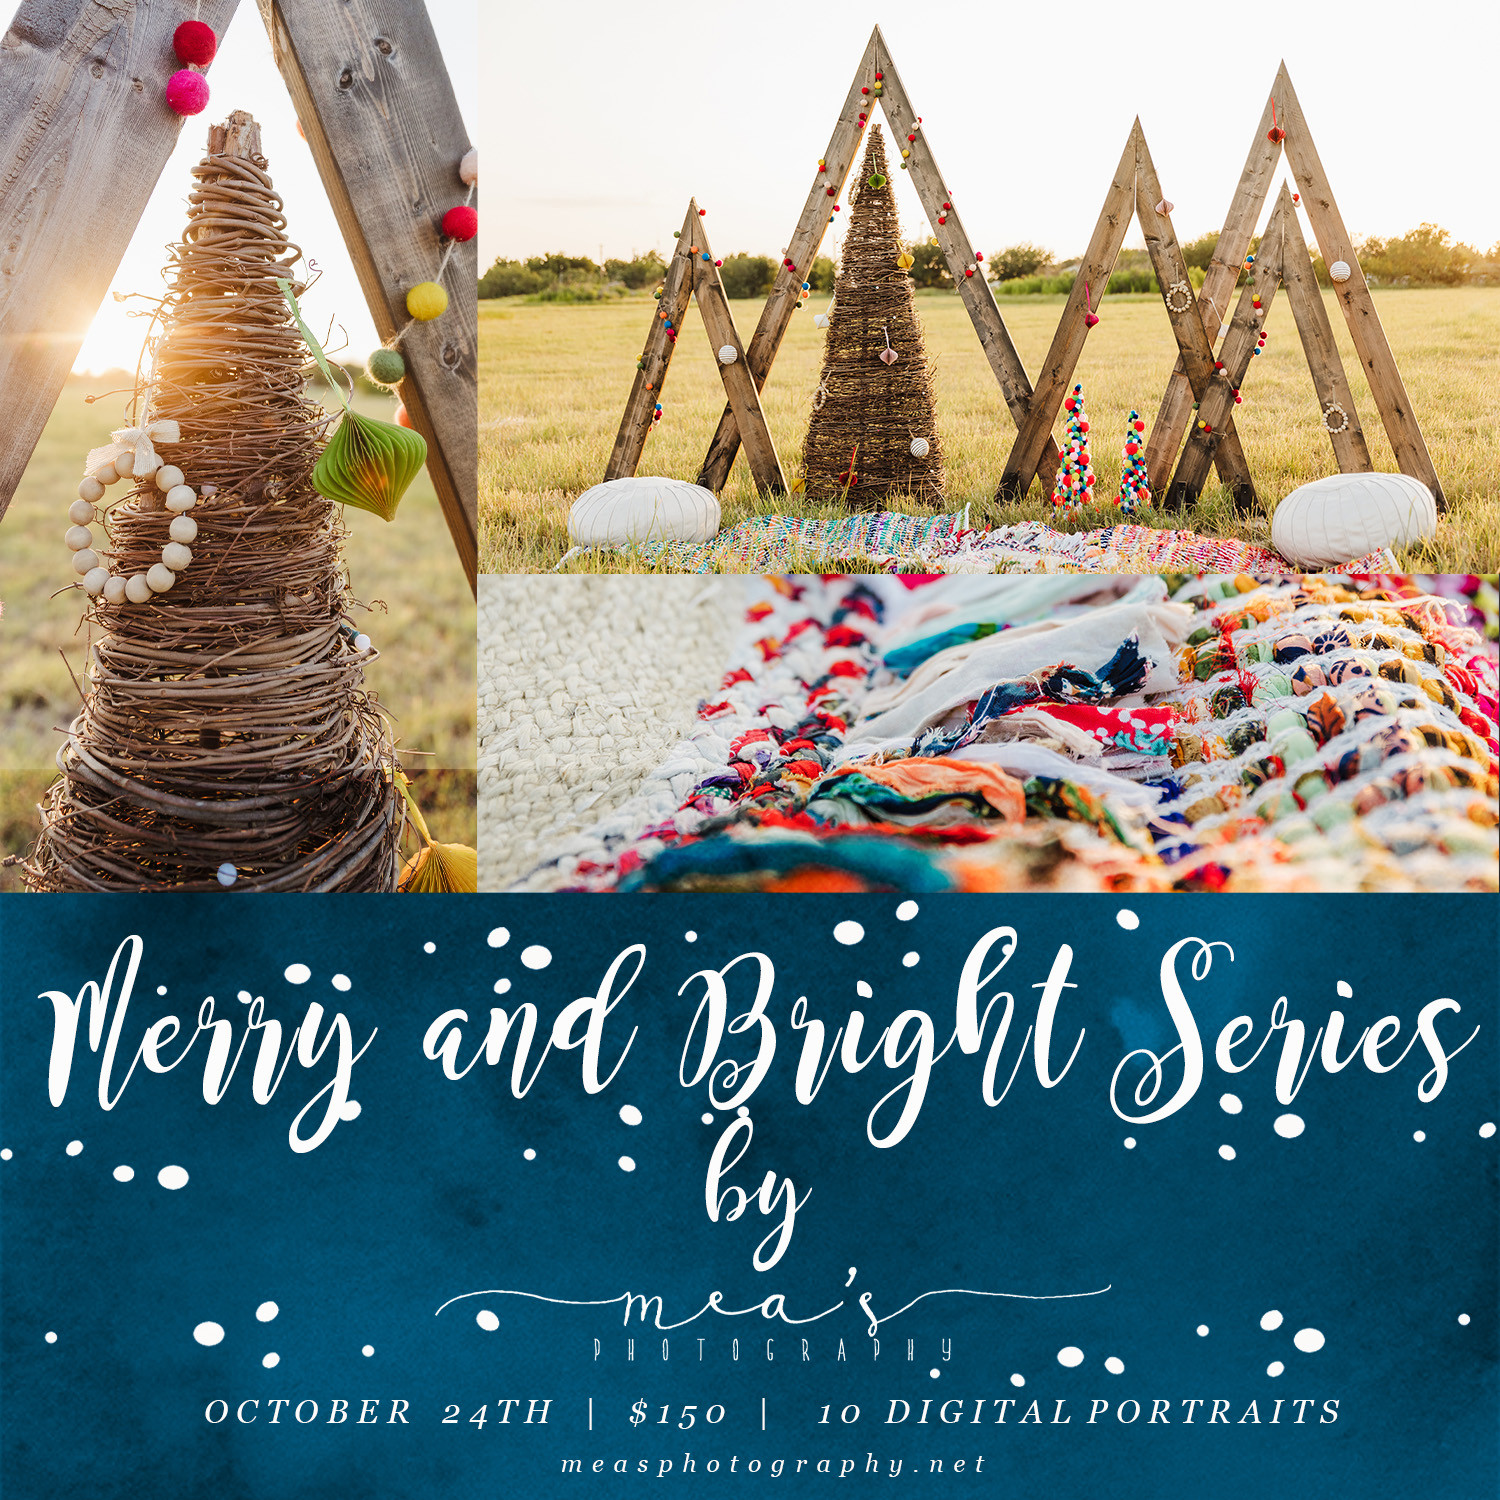 Merry and Bright Series